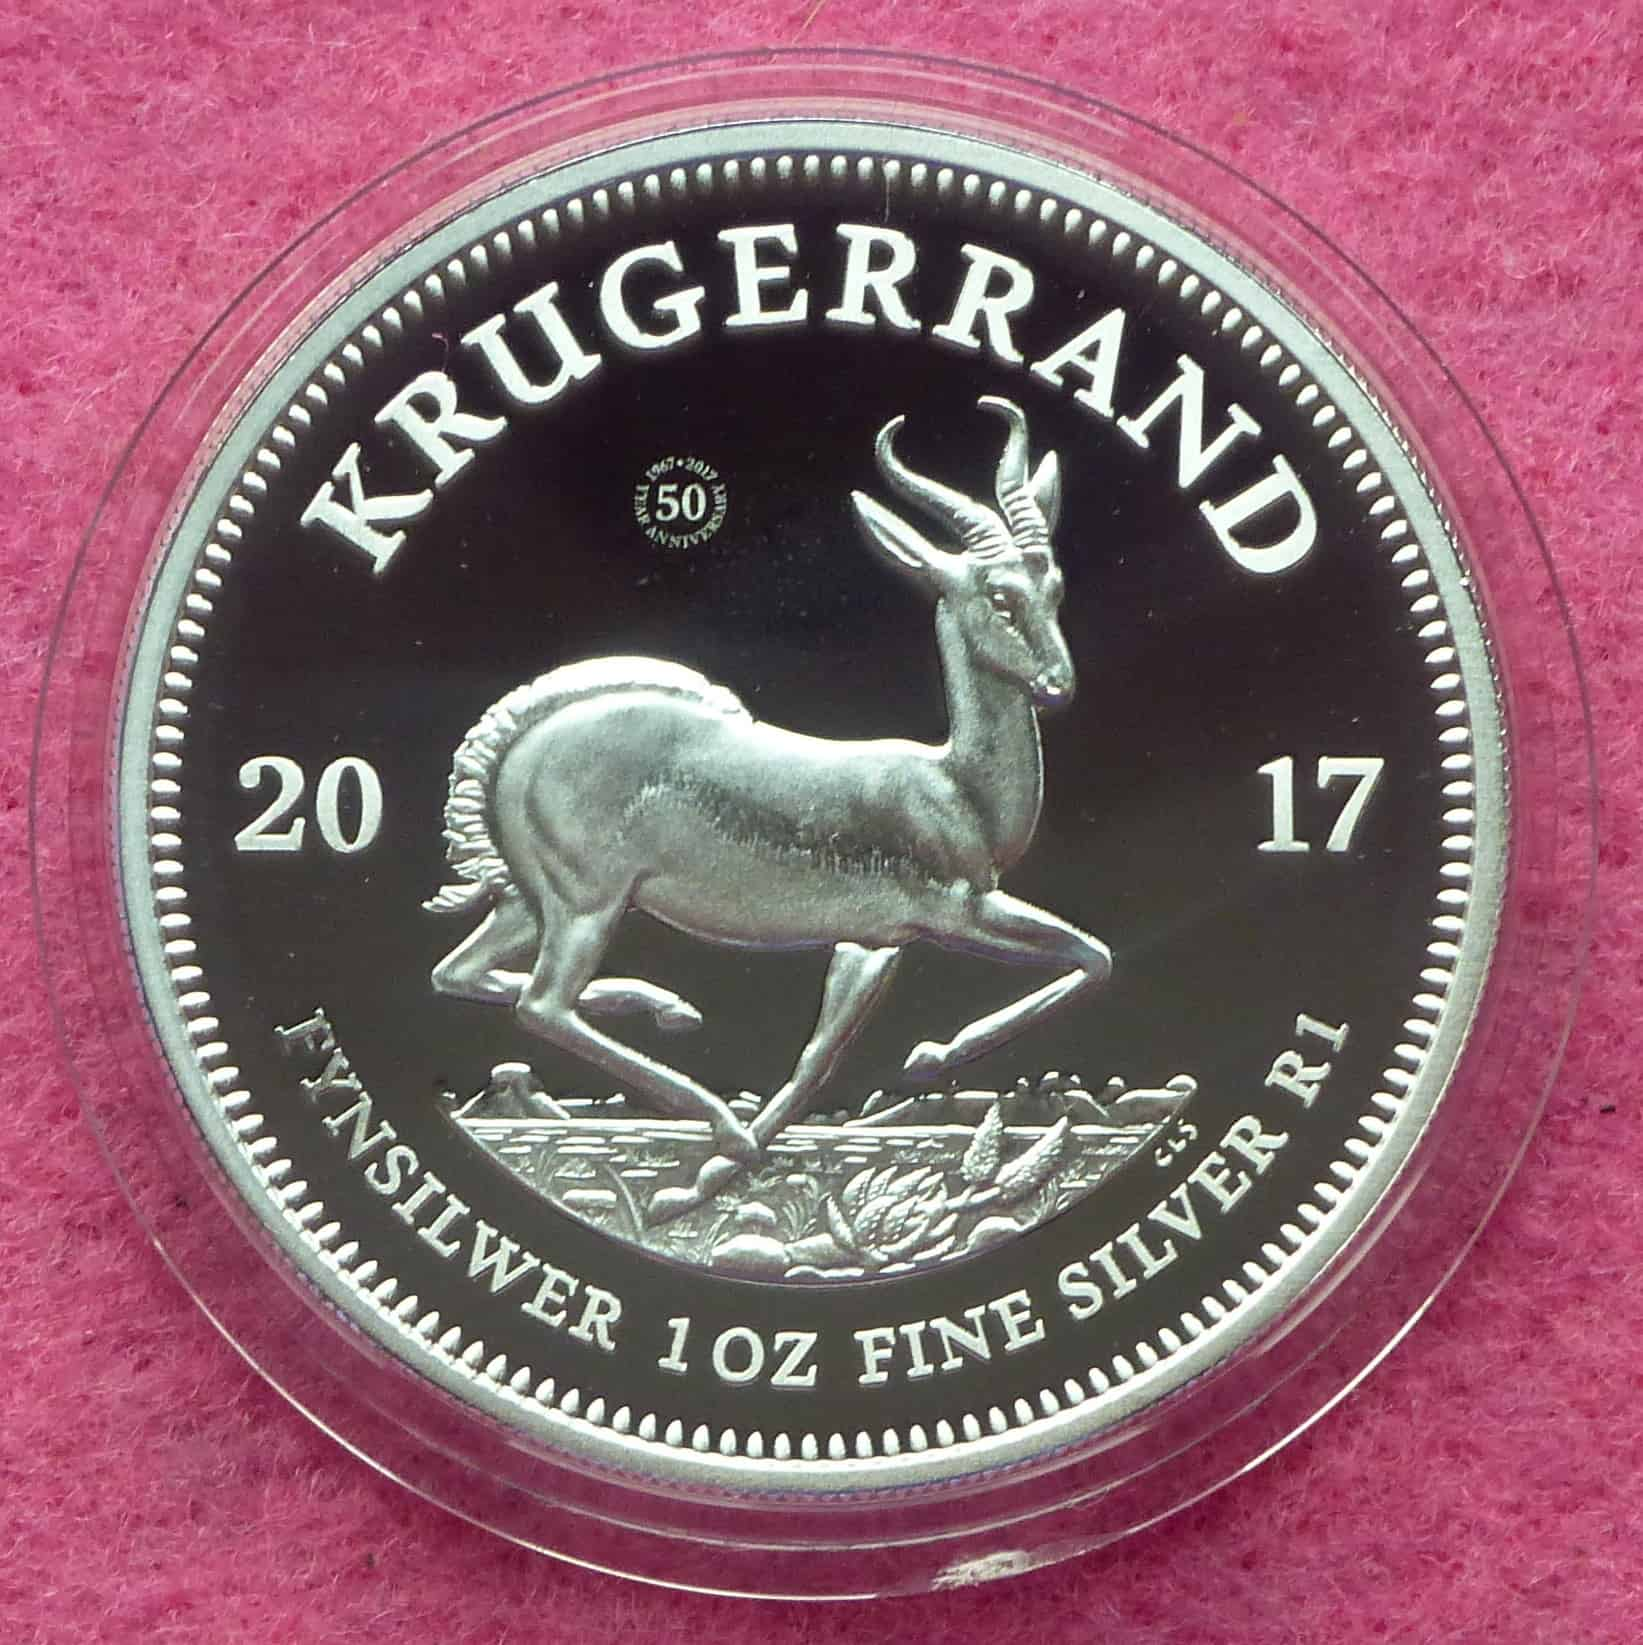 2017 Silver Proof Krugerrand 50th Anniversary 1oz Coin Box